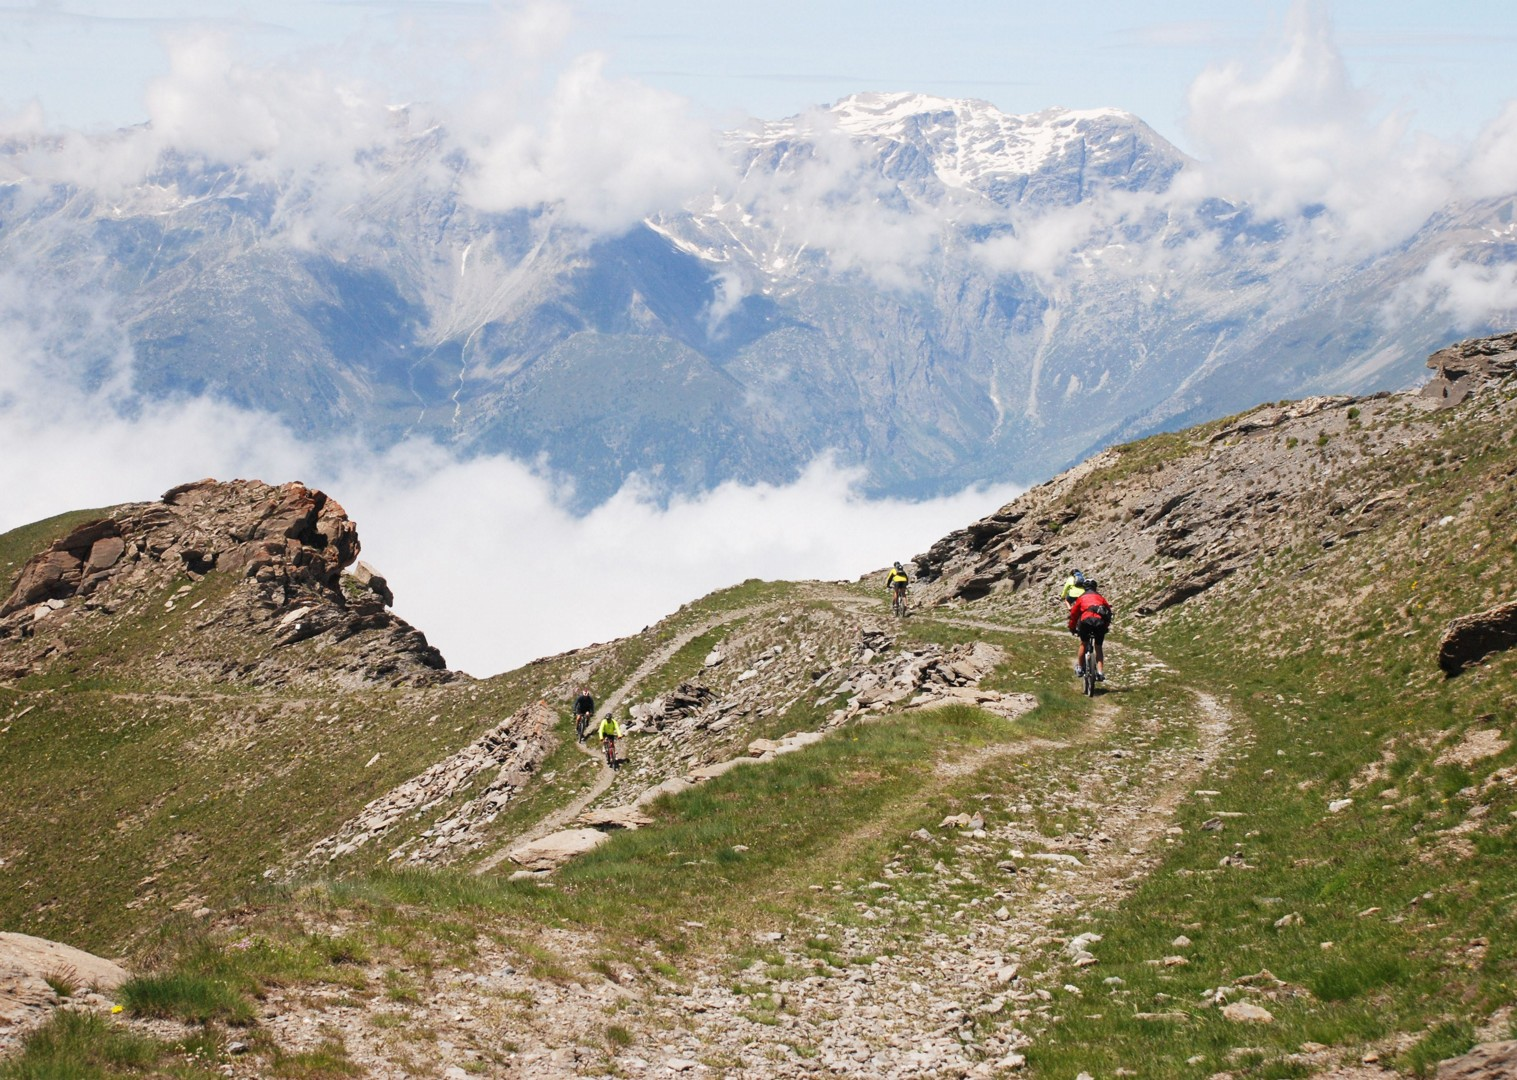 aussois-italy-and-france-alpine-adventure-guided-mountain-bike-holiday.JPG - Italy and France - Alpine Adventure - Guided Mountain Bike Holiday - Mountain Biking